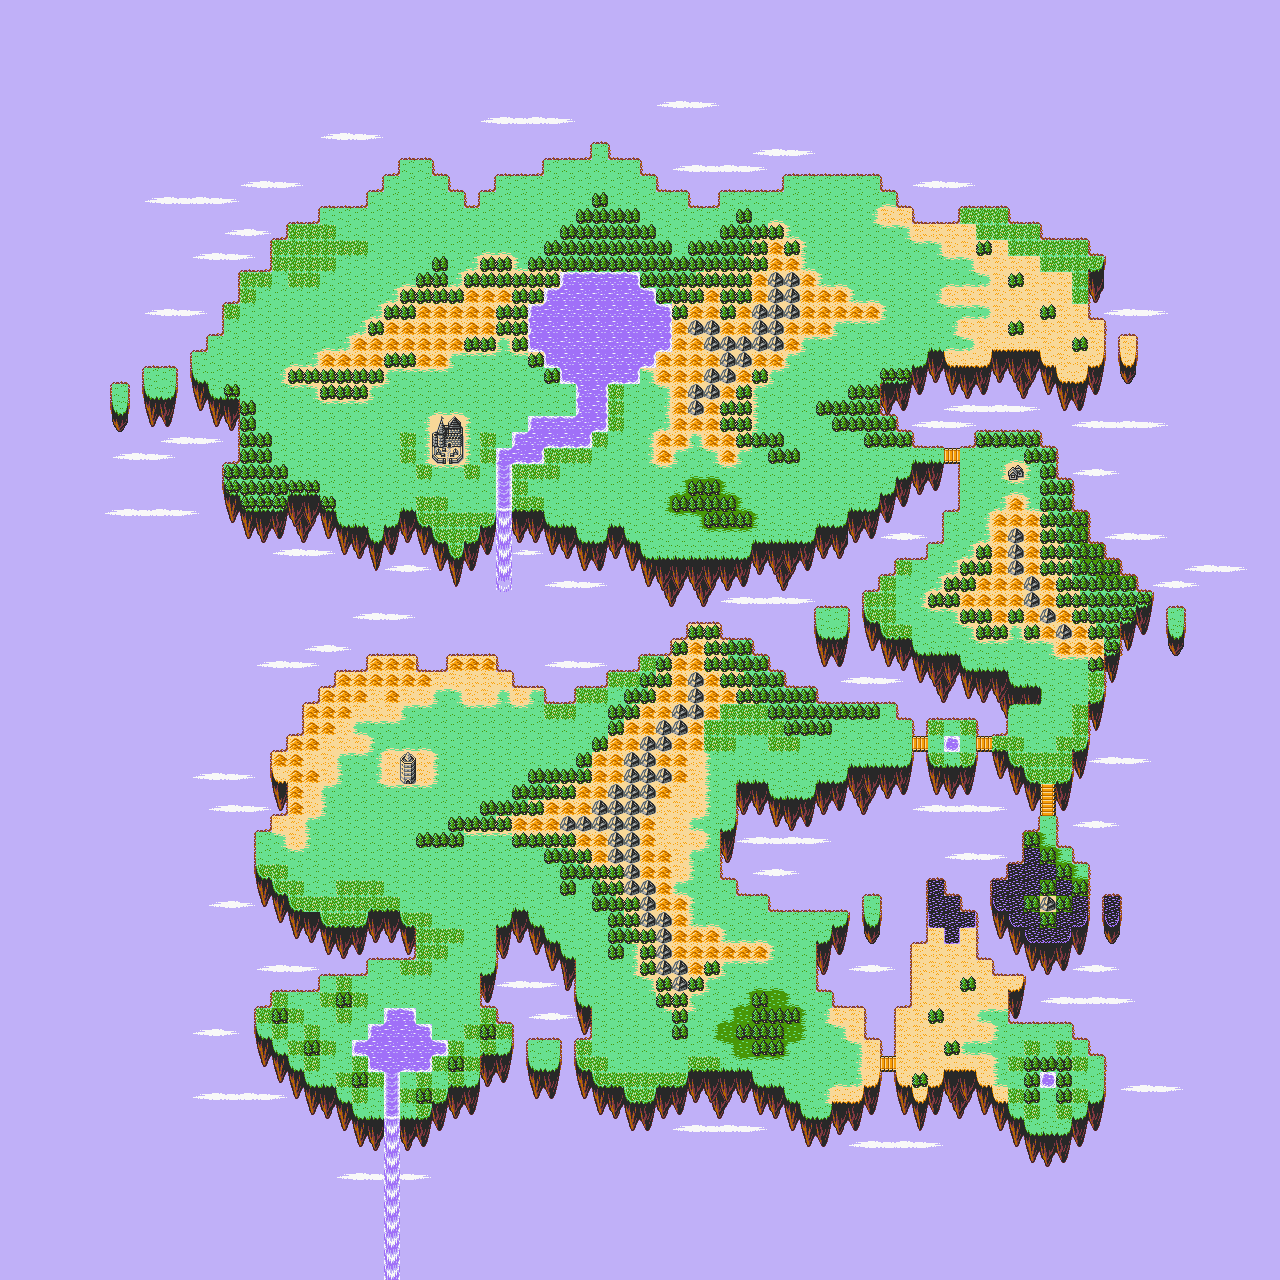 Retro game challenge guadia quest now that theres a fan translation of the second game i felt obliged to map the guadia quest saga world gumiabroncs Images